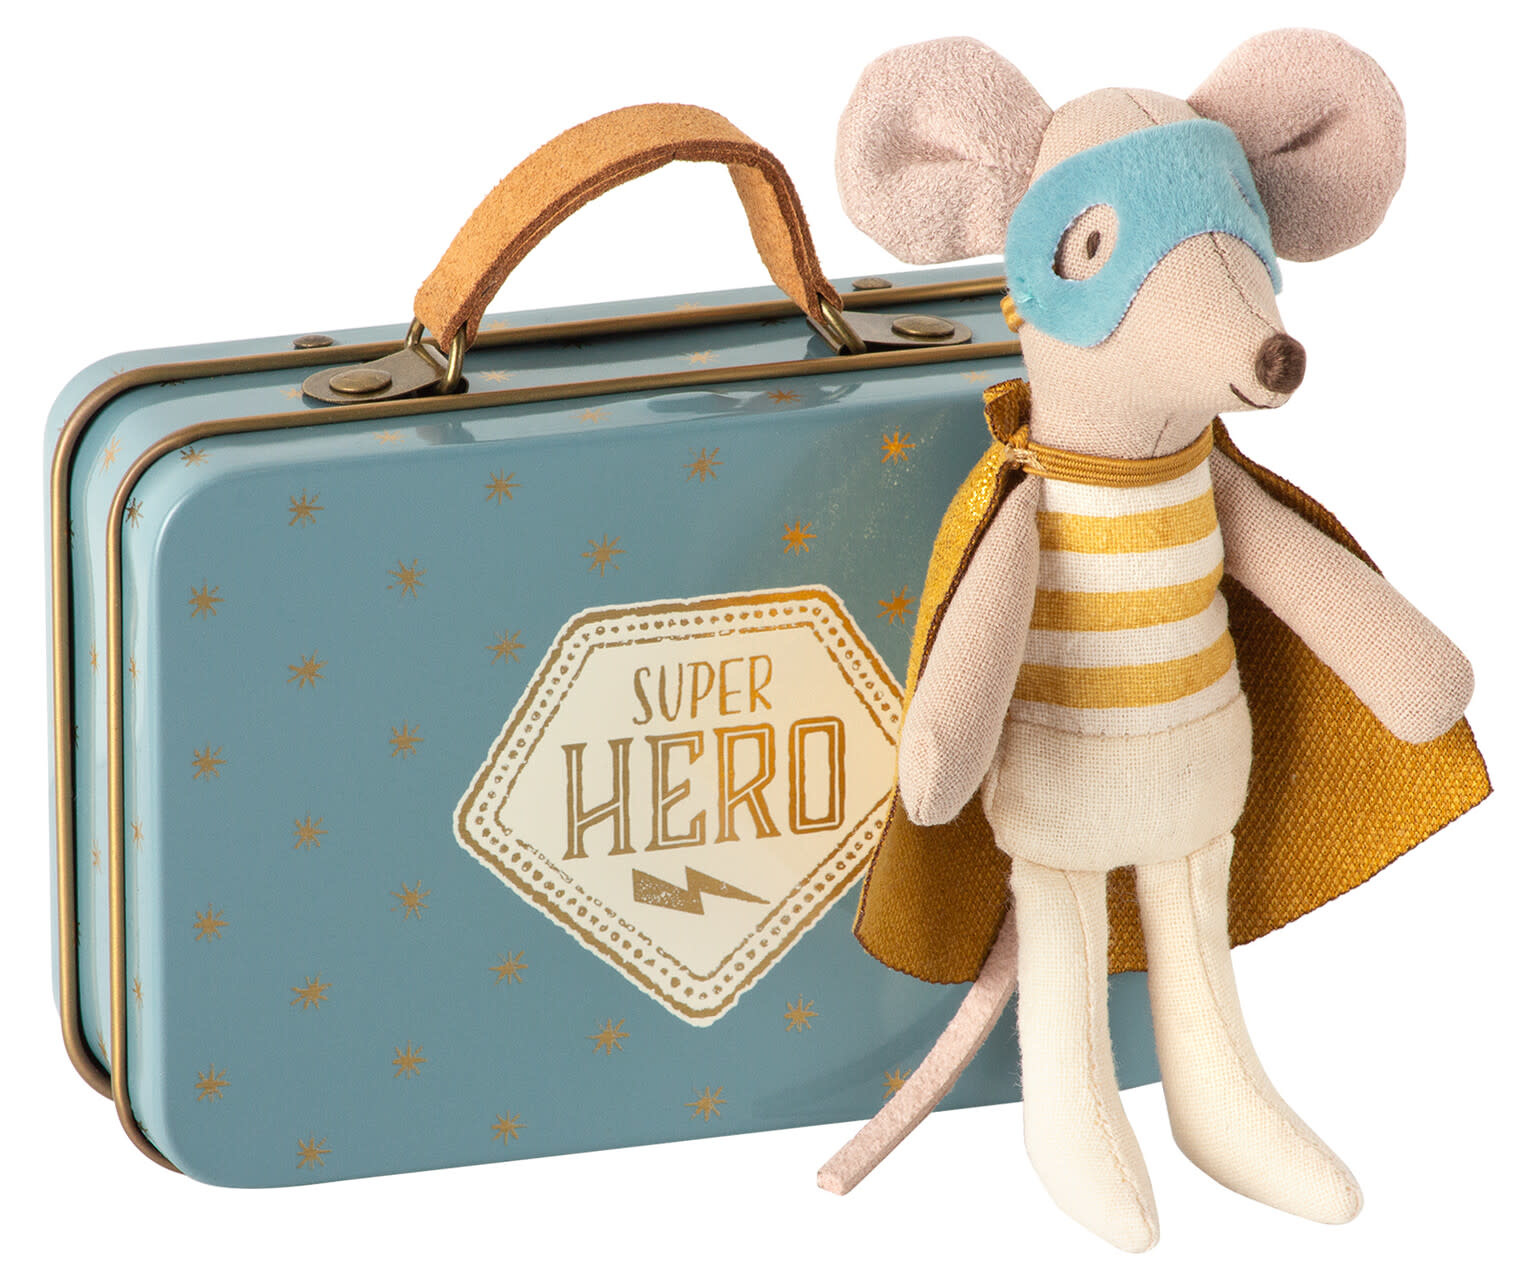 Superhero mouse, little brother in suitcase-1